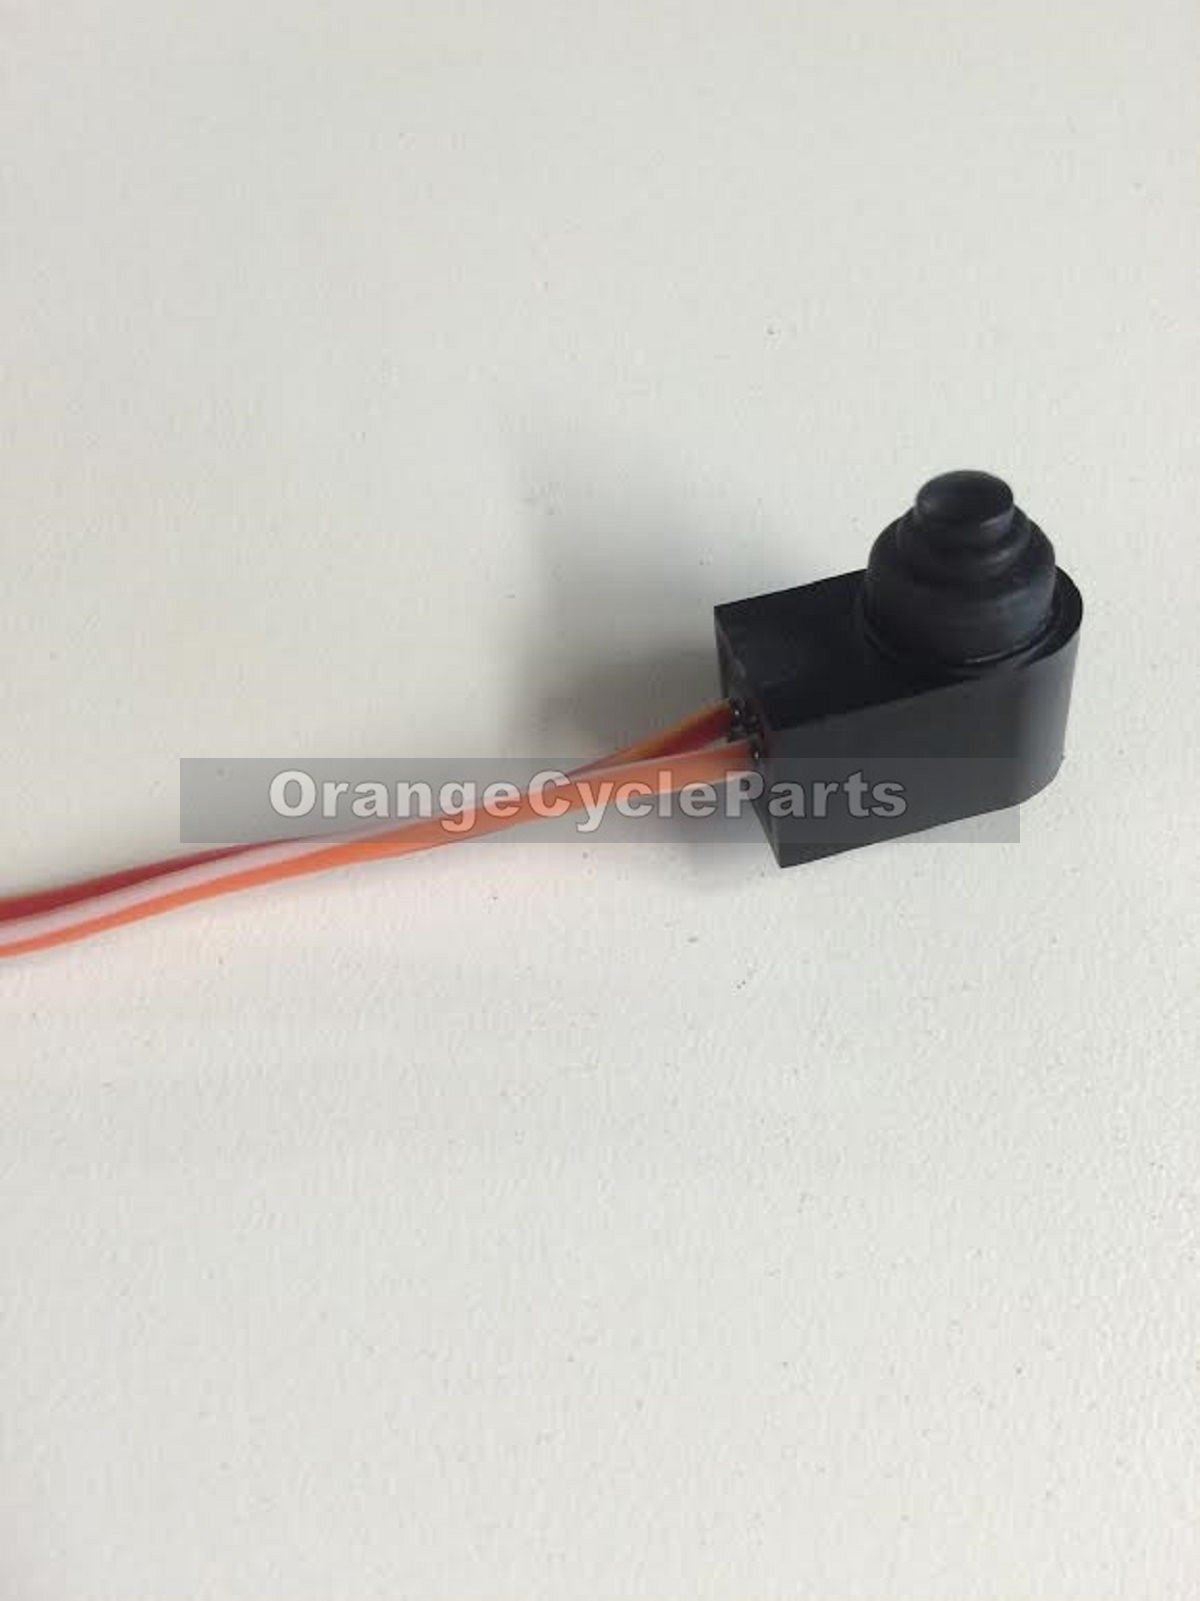 Orange Cycle Parts Master Cylinder Front Brake Stop Light Switch for Harley 1996-2013 Replaces OEM # 71590-96 and 71621-08 by Orange Cycle Parts